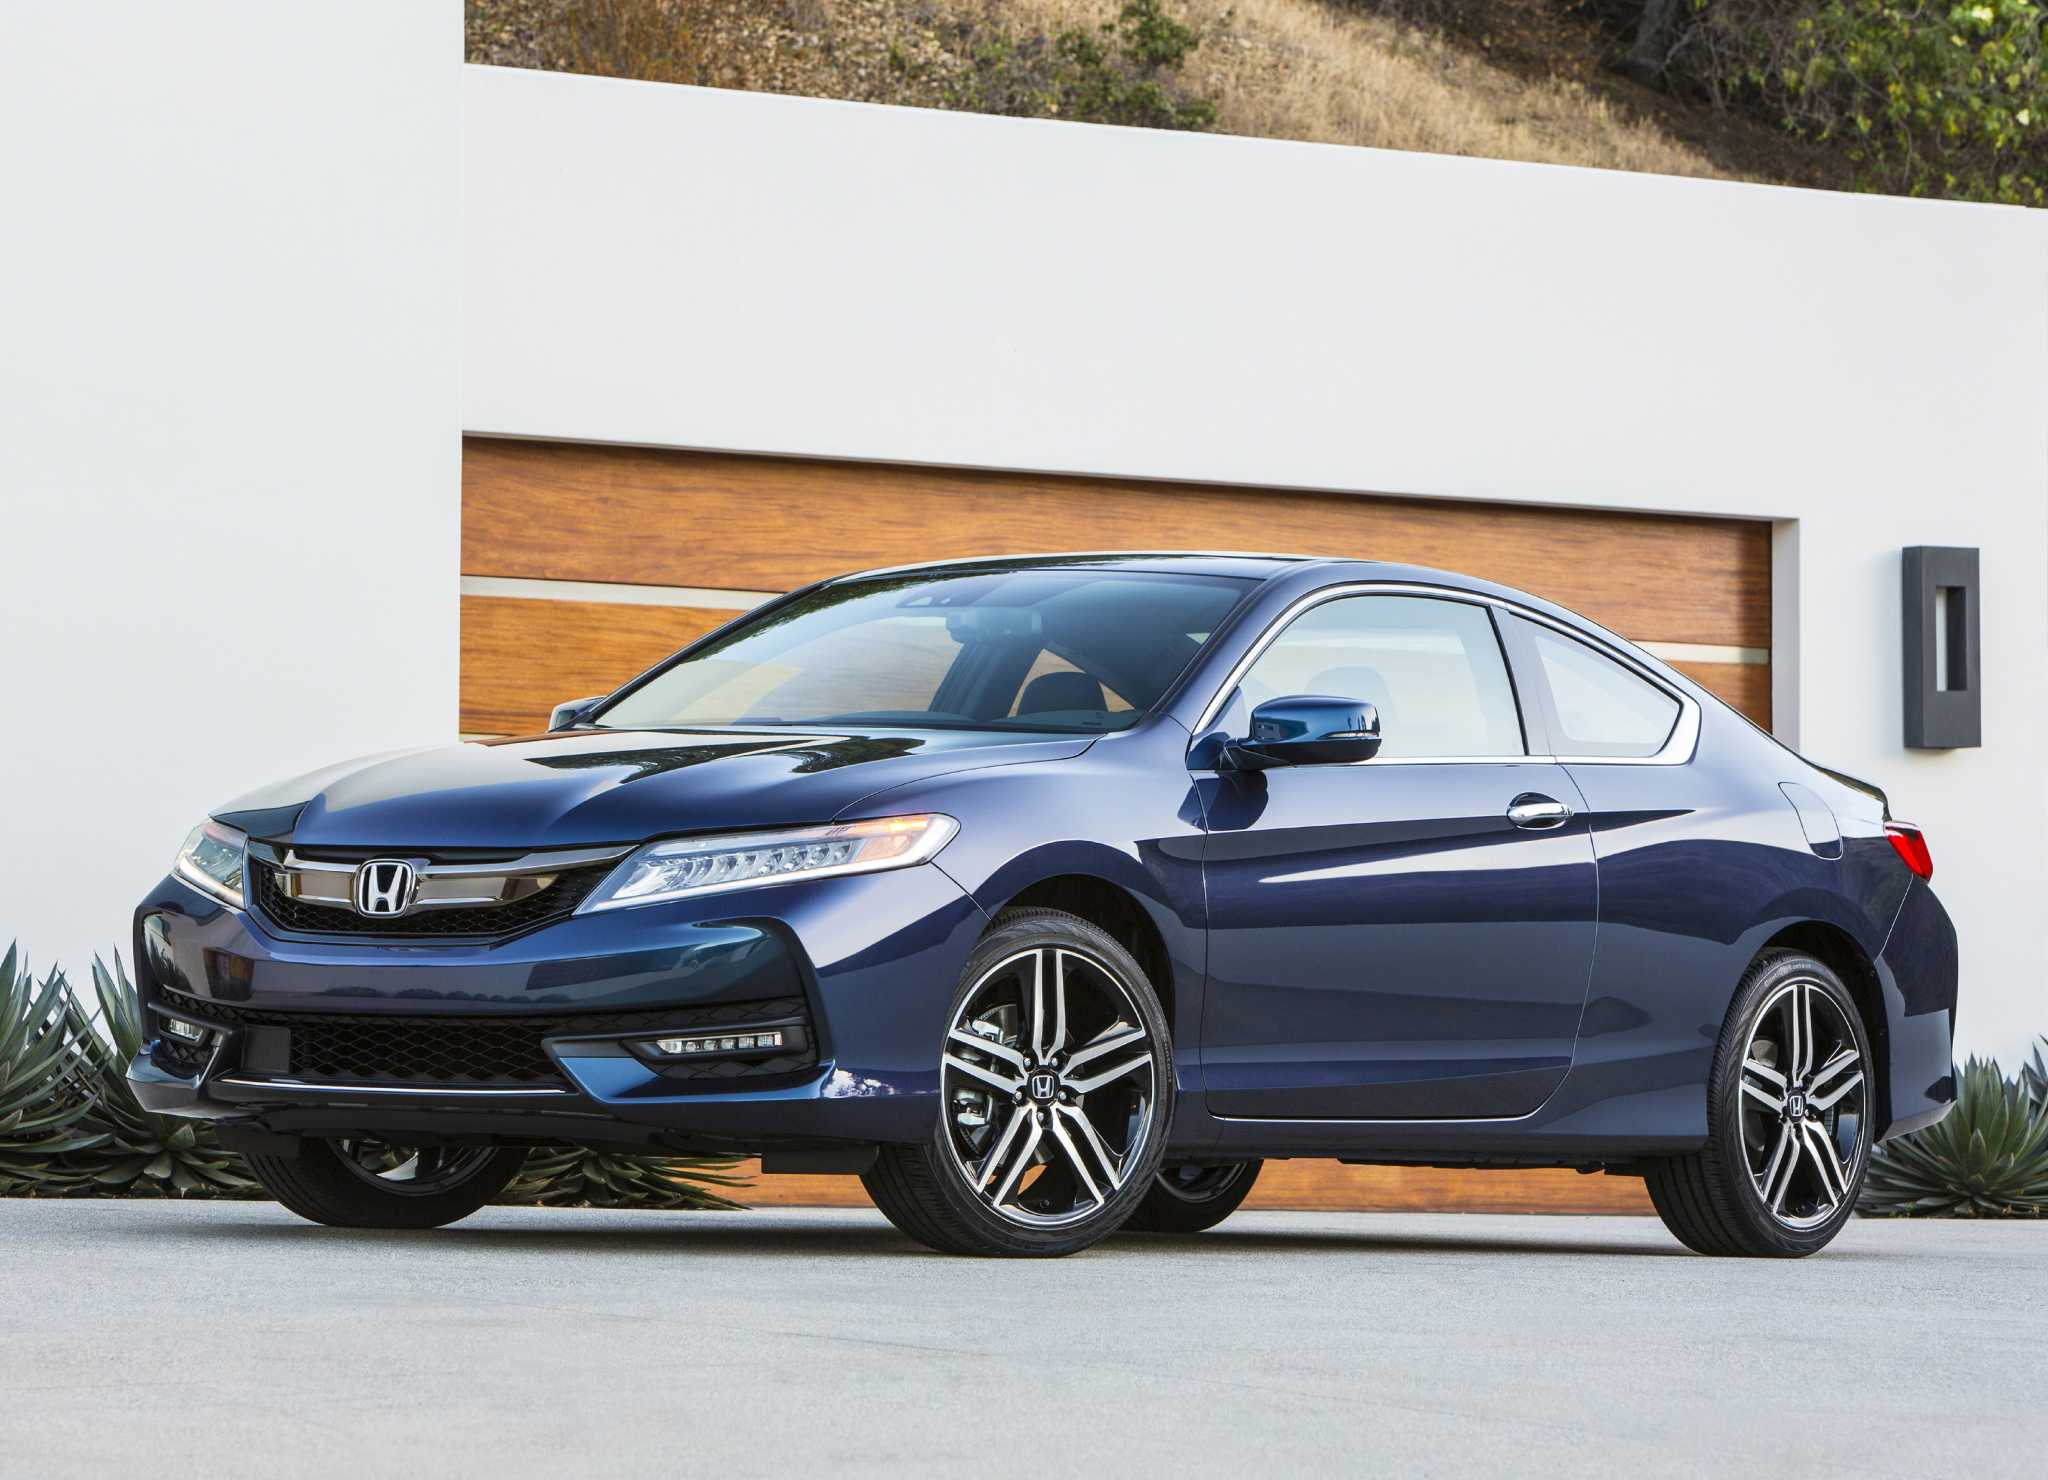 2017 Honda Accord Coupe S Styling Matches Its Value